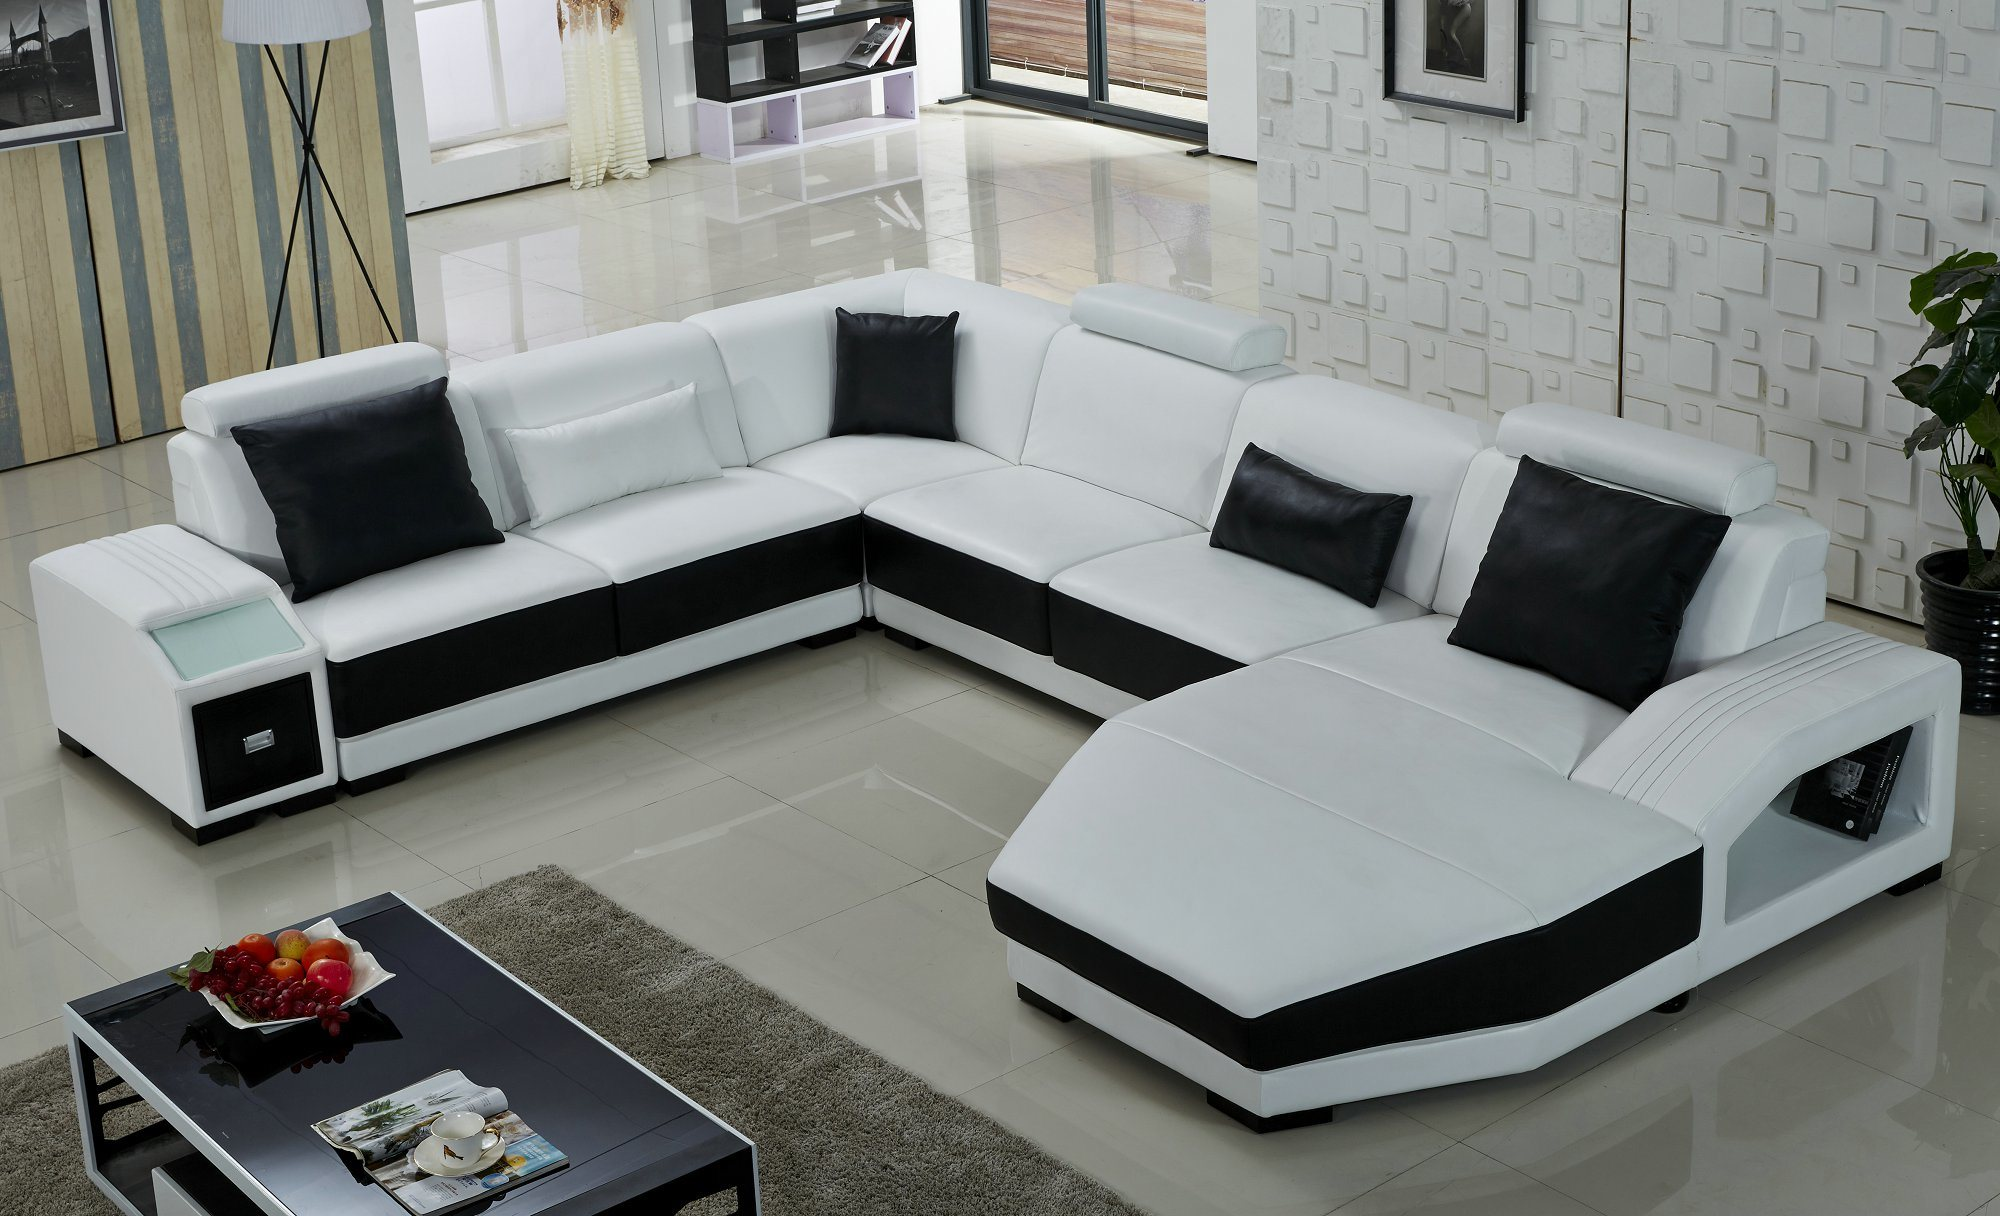 foto de sof moderno em forma de u branco em pt made in. Black Bedroom Furniture Sets. Home Design Ideas